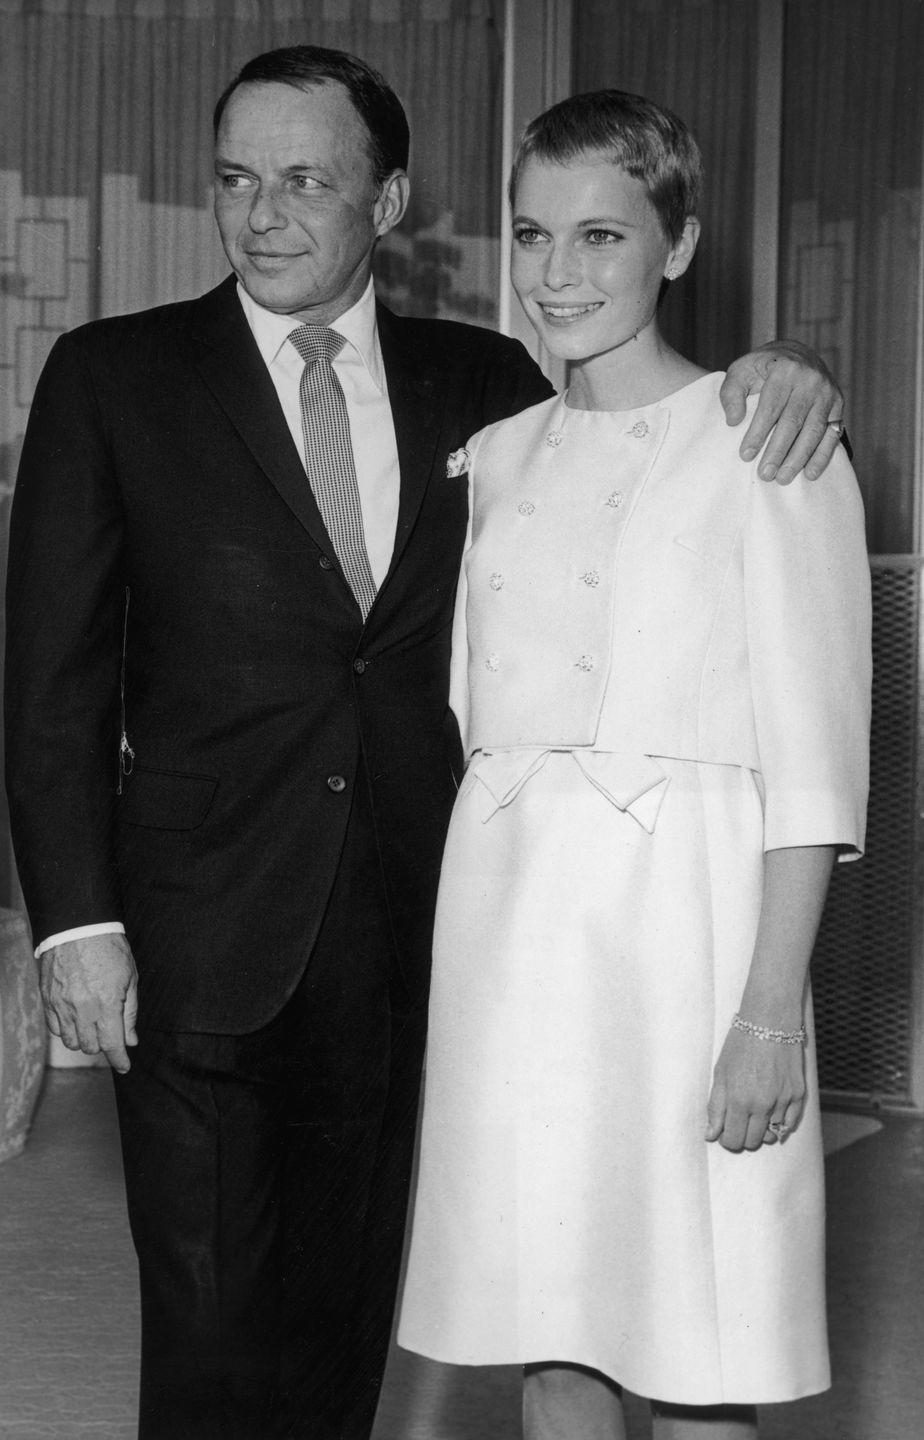 """<p>Despite a nearly 30-year age difference, Frank Sinatra and Mia Farrow wed on July 19, 1966. They got married in a <a href=""""https://www.marthastewart.com/7904799/mia-farrow-and-frank-sinatra-wedding-anniversary-day-history"""" rel=""""nofollow noopener"""" target=""""_blank"""" data-ylk=""""slk:small ceremony at The Sands Hotel in Las Vegas"""" class=""""link rapid-noclick-resp"""">small ceremony at The Sands Hotel in Las Vegas</a> and had an intimate reception at Bill Goetz's nearby estate afterward. </p>"""